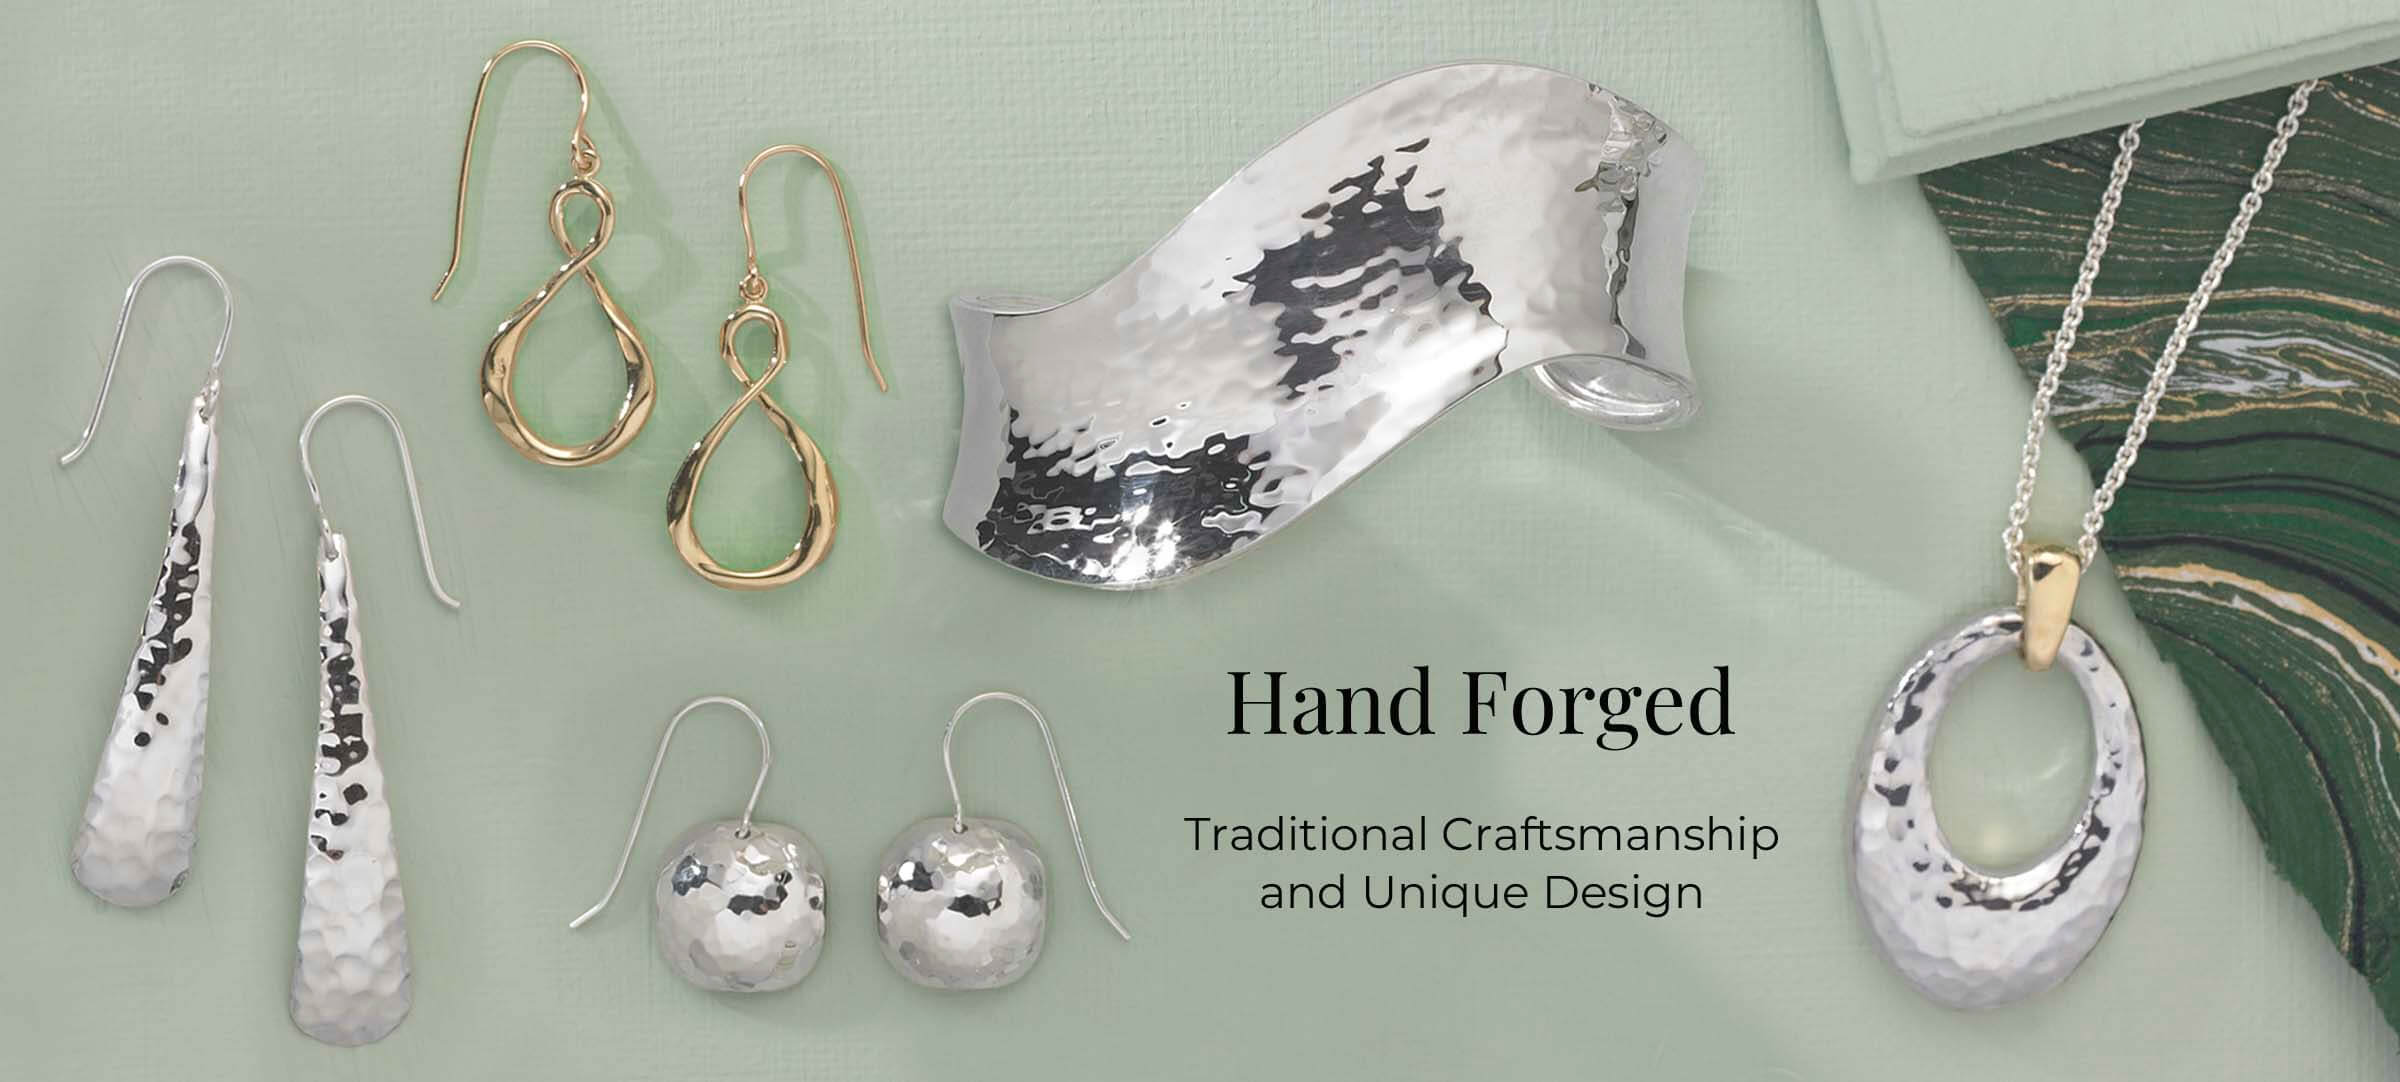 hand-forged-reduced.jpg